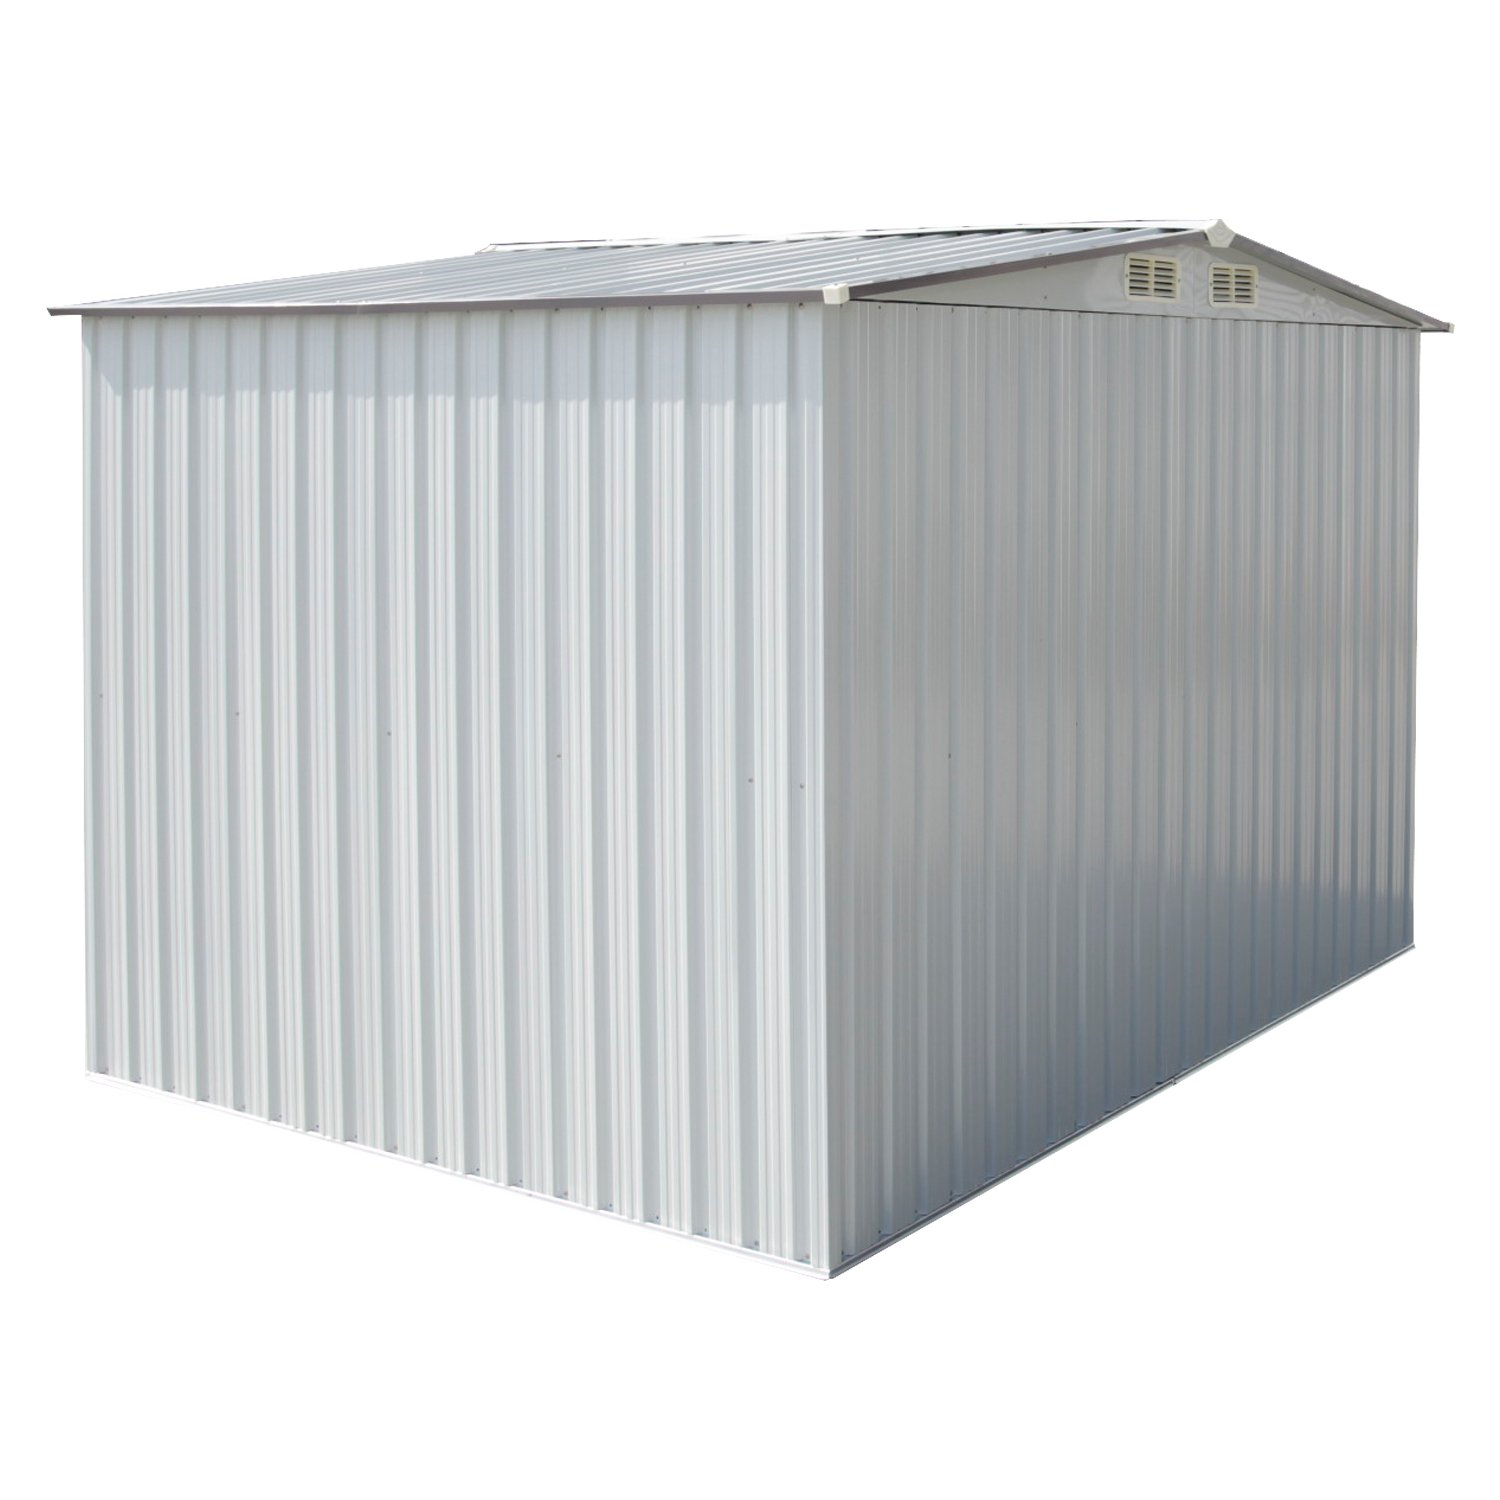 Kinbor New 8' x 6' Outdoor White Steel Garden Storage Utility Tool Shed Backyard Lawn Building Garage w/Sliding Door by Kinbor (Image #7)